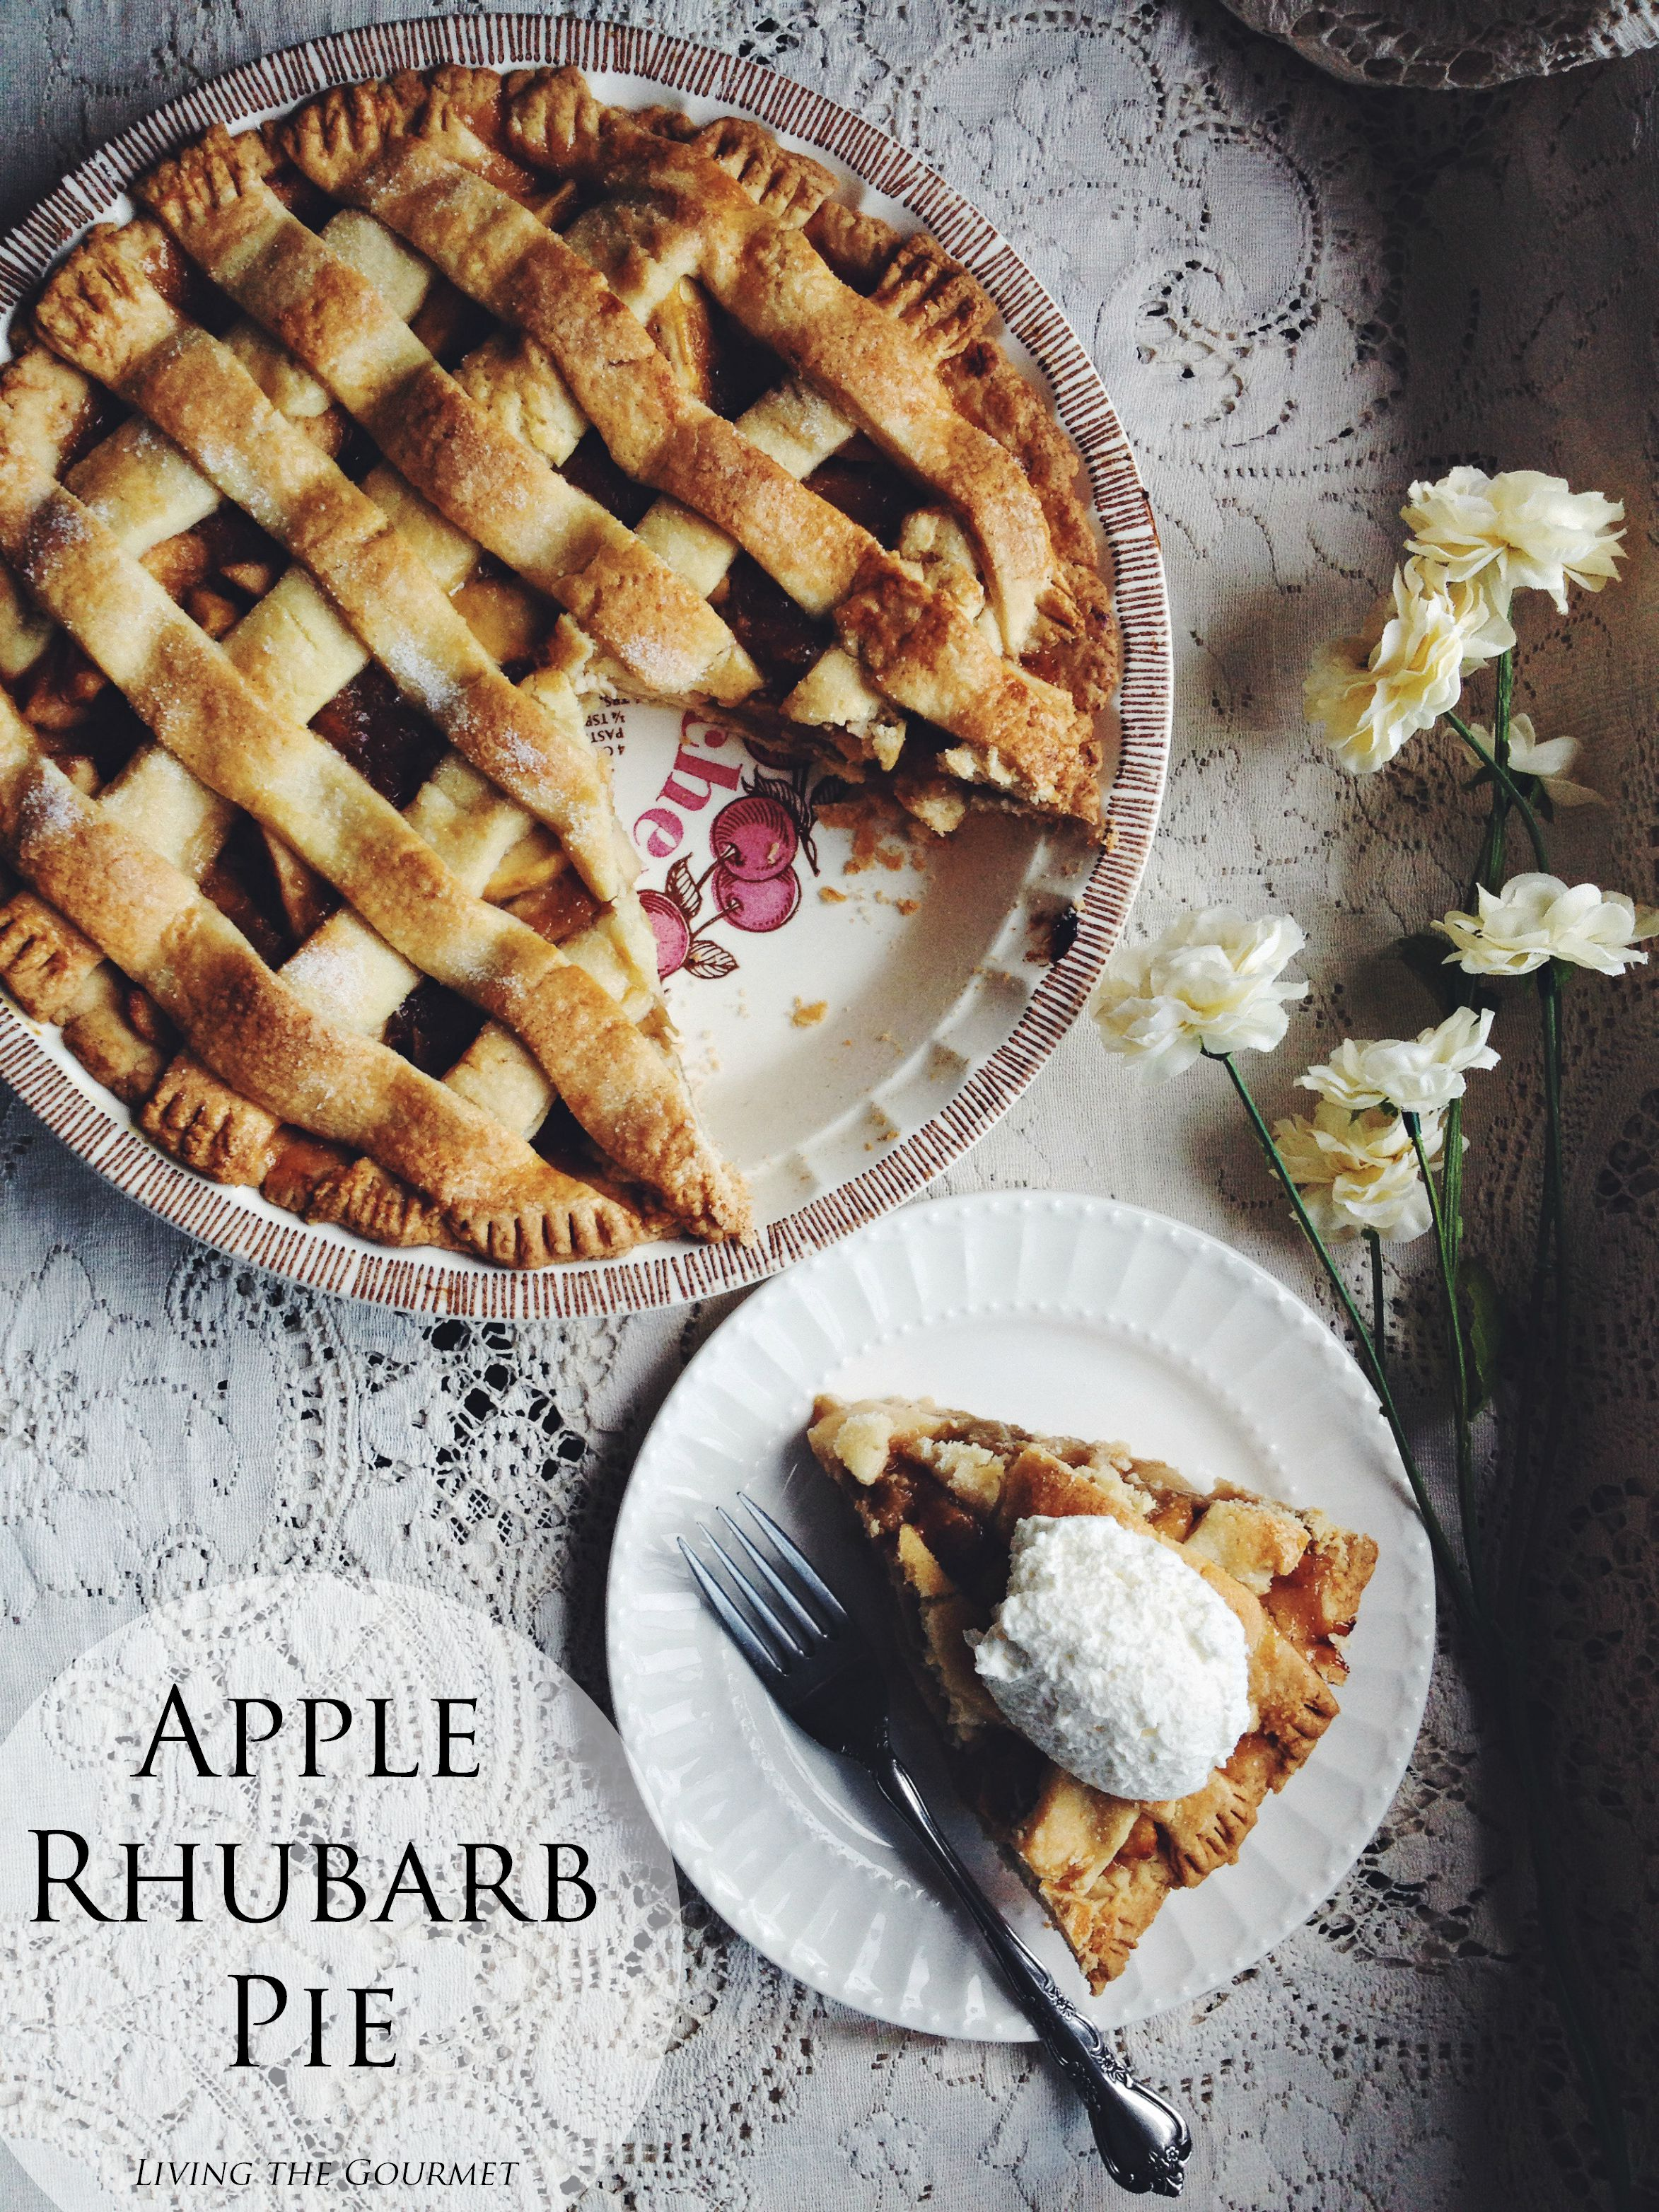 Living the Gourmet: Apple Rhubarb Pie